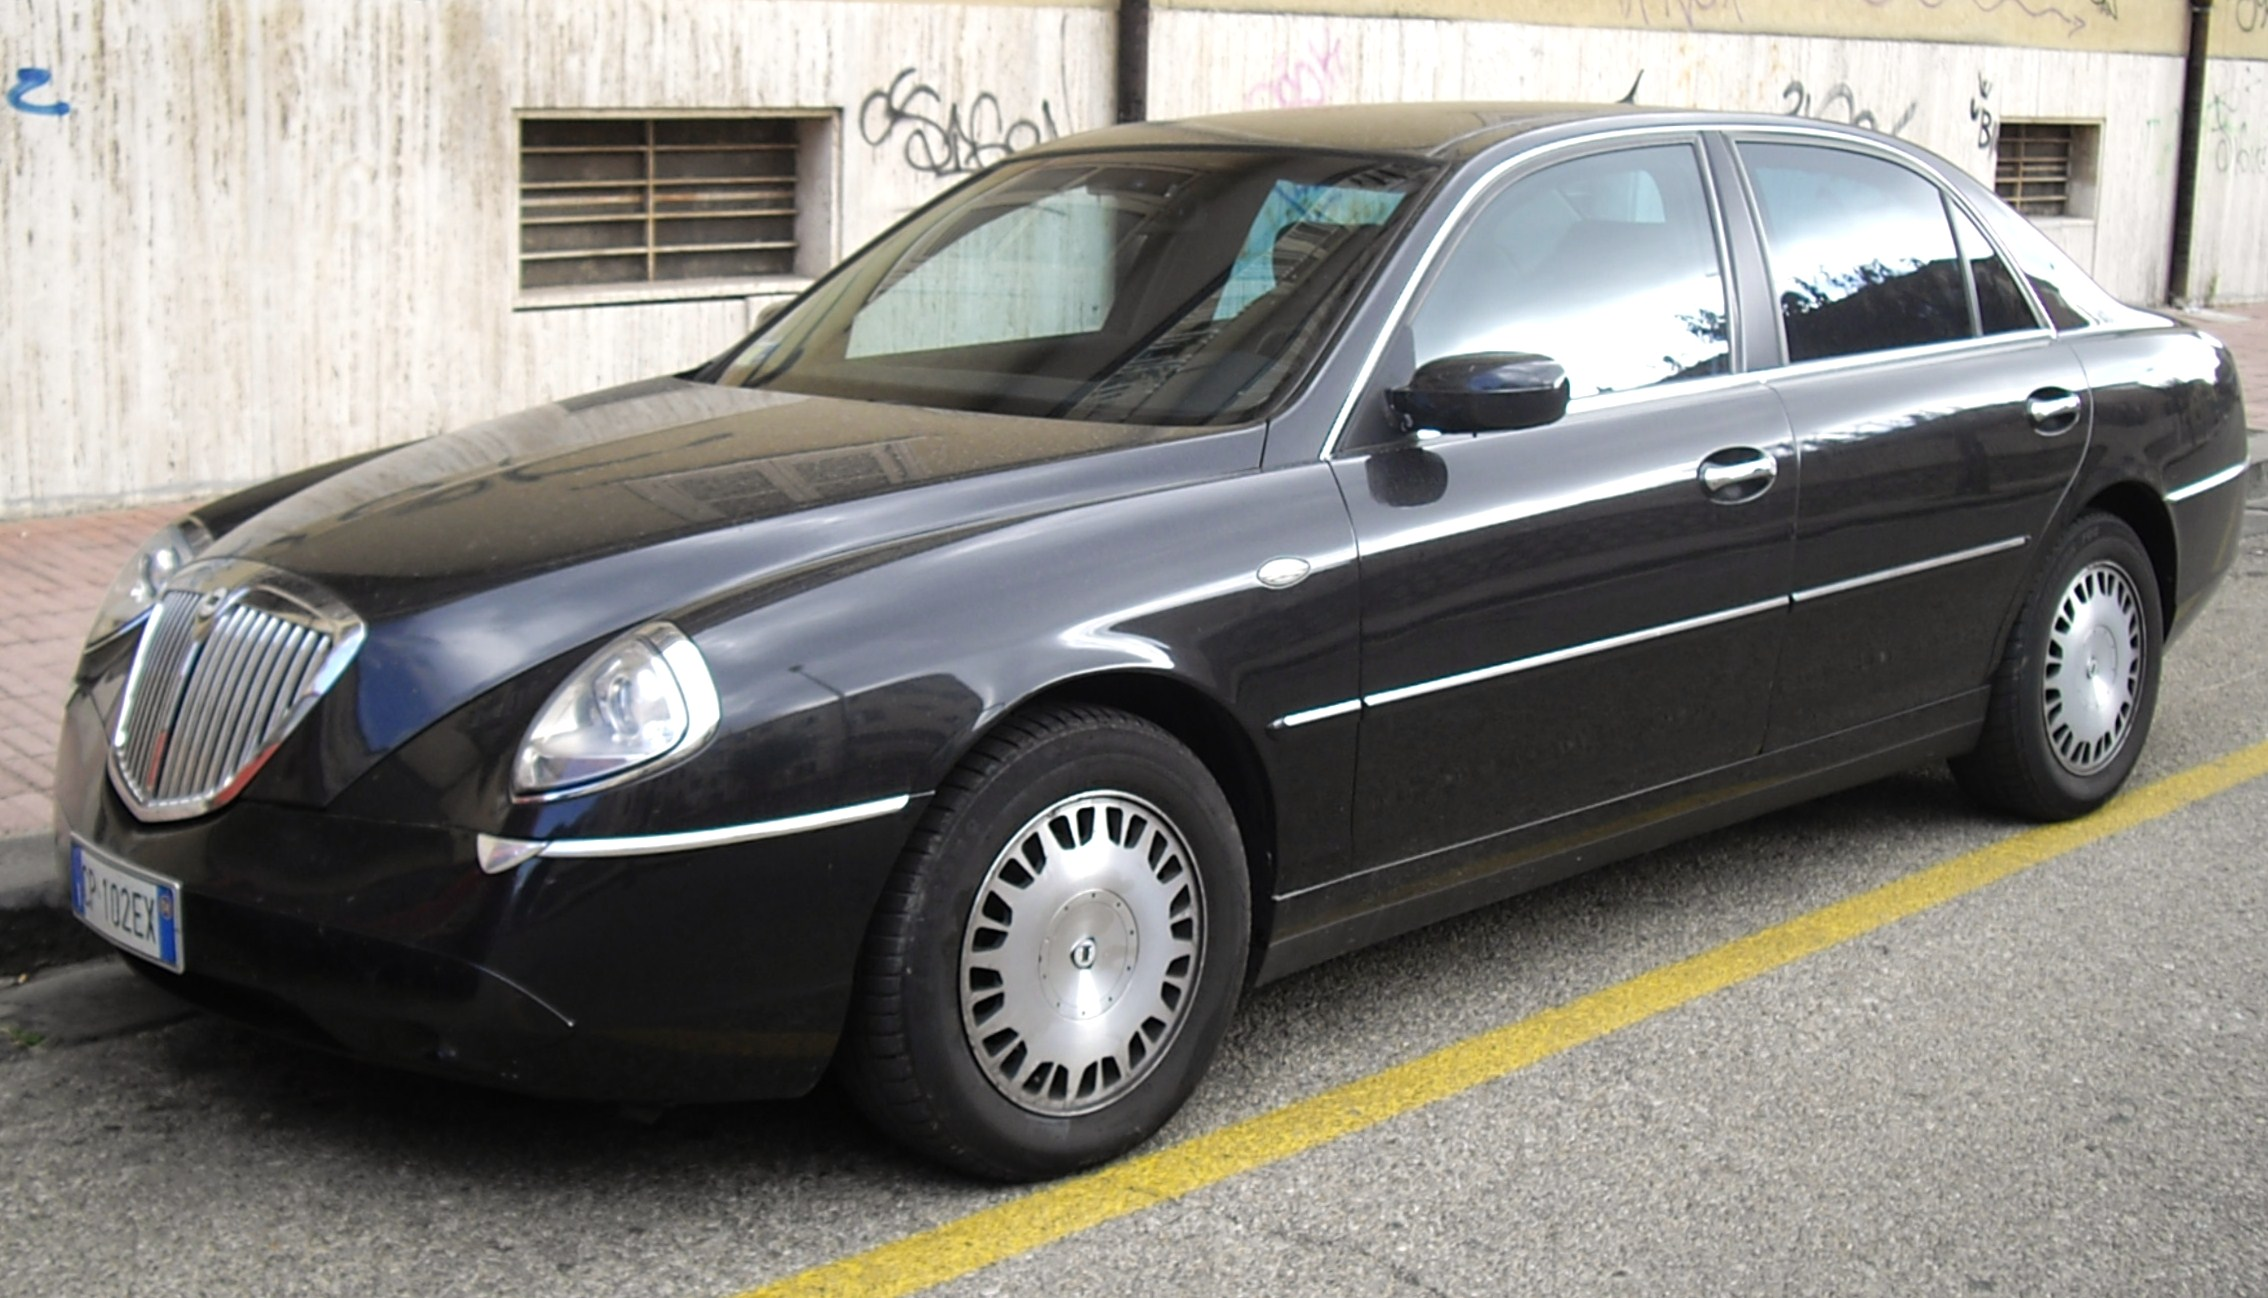 barre portatutto lancia thesis vendo